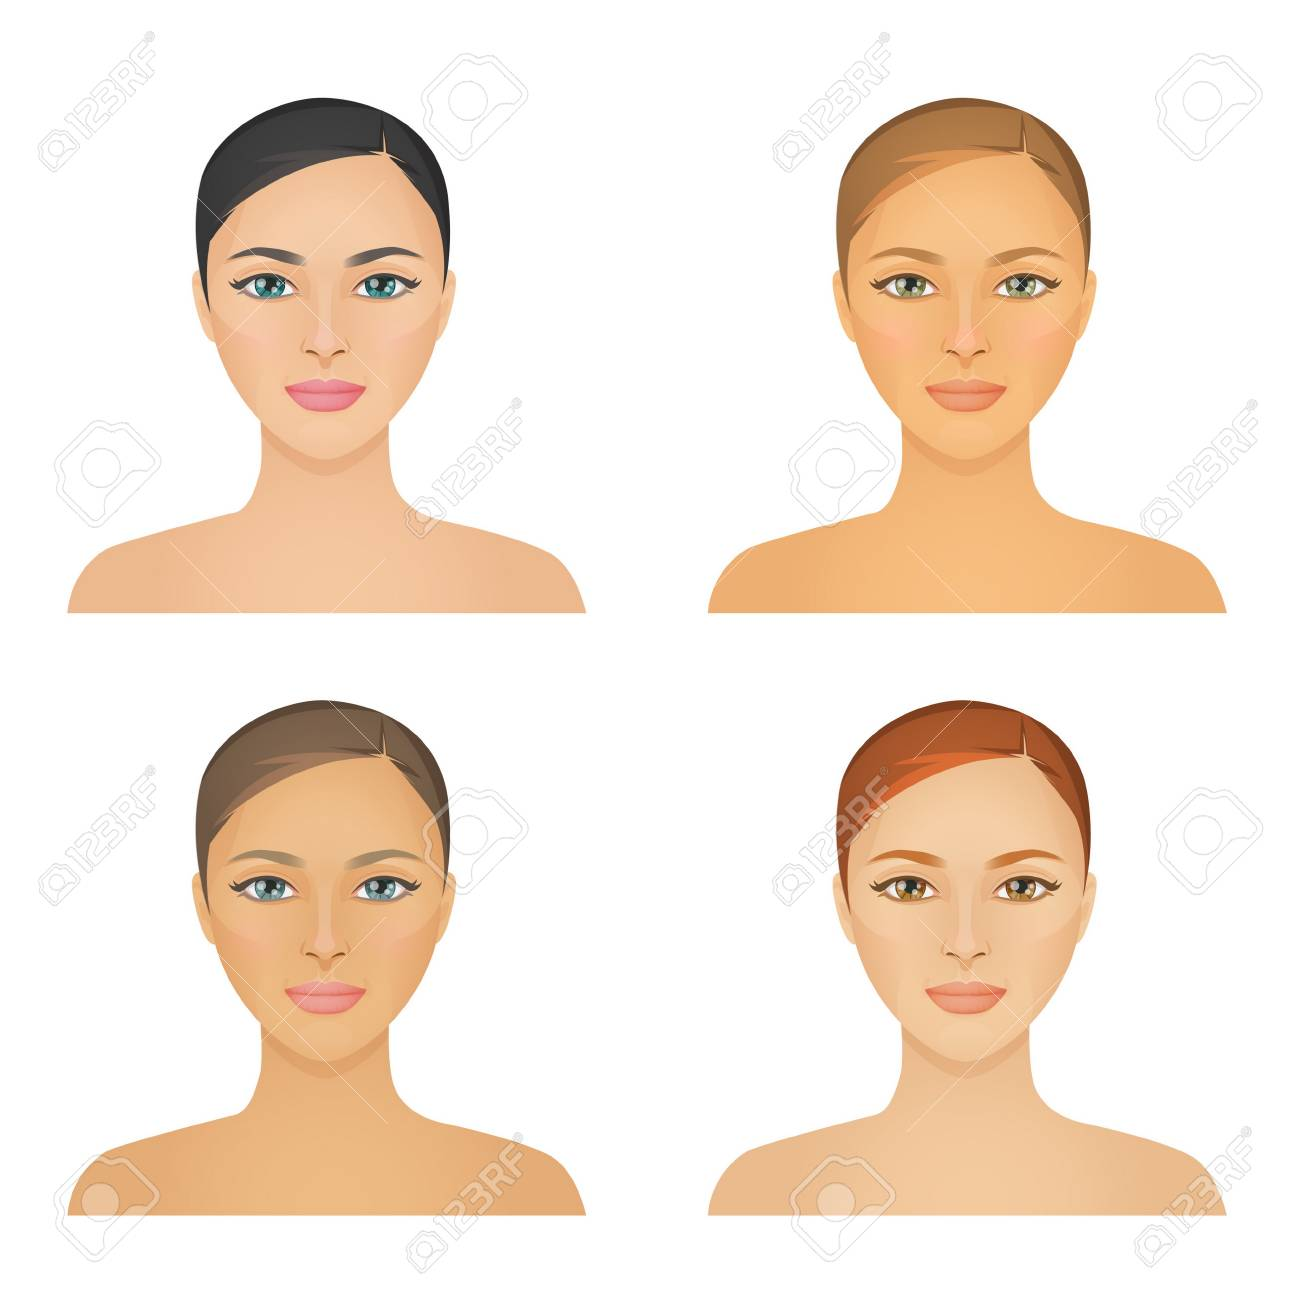 Human appearence information chart showing various kinds of women looks color types, hight and low contrast types, various skintones, hair and eyes. - 83921013